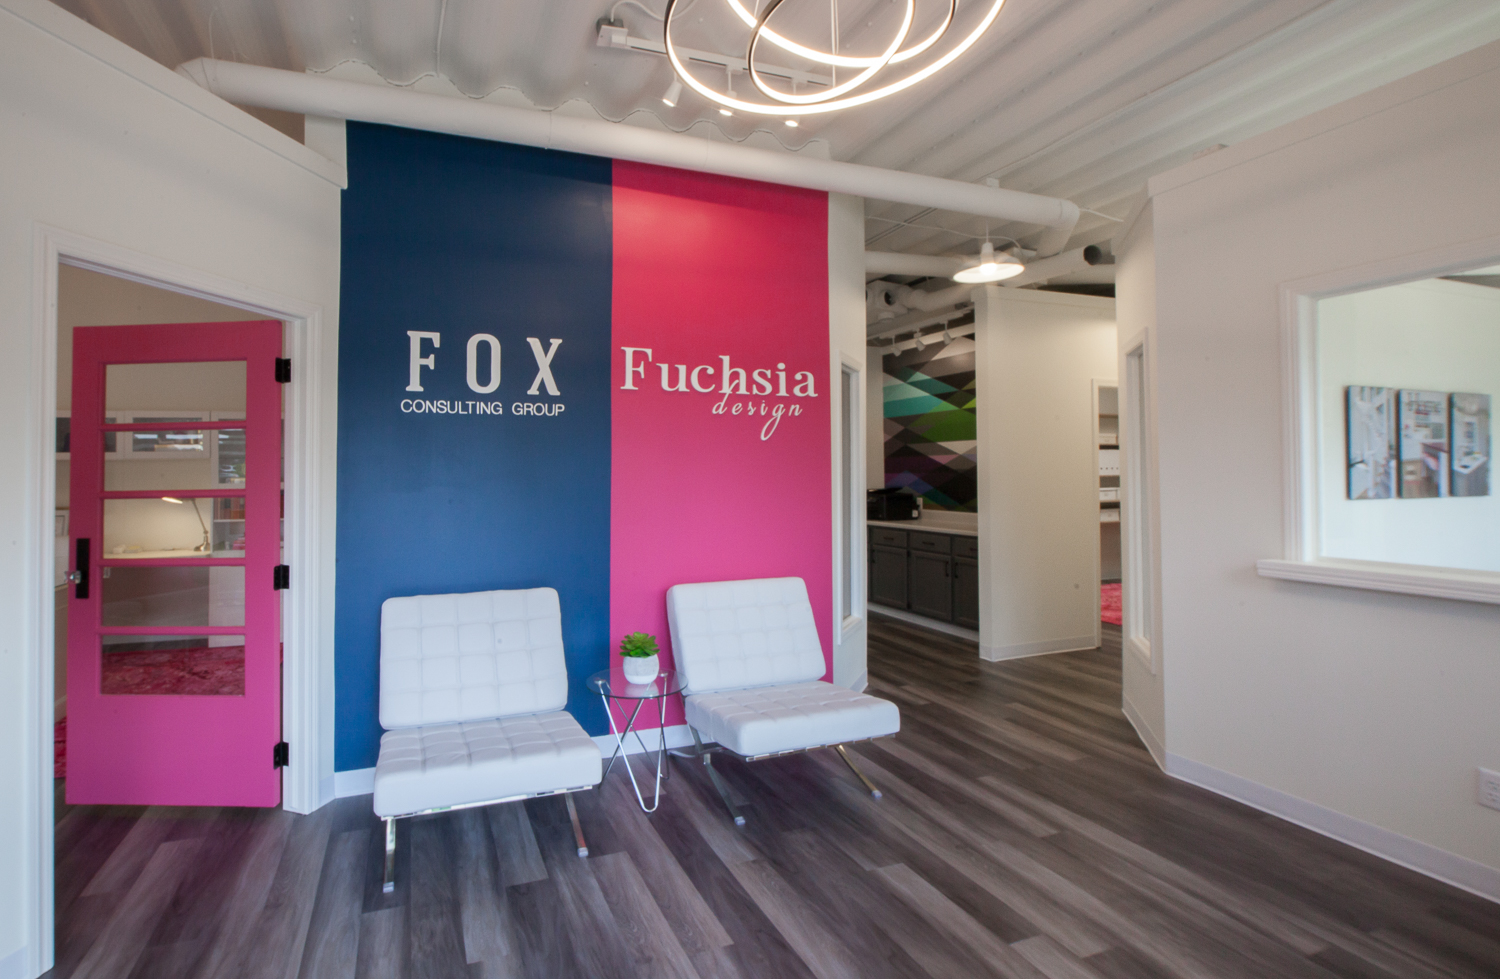 Fuchsia Design and Fox Consulting Group Office Space